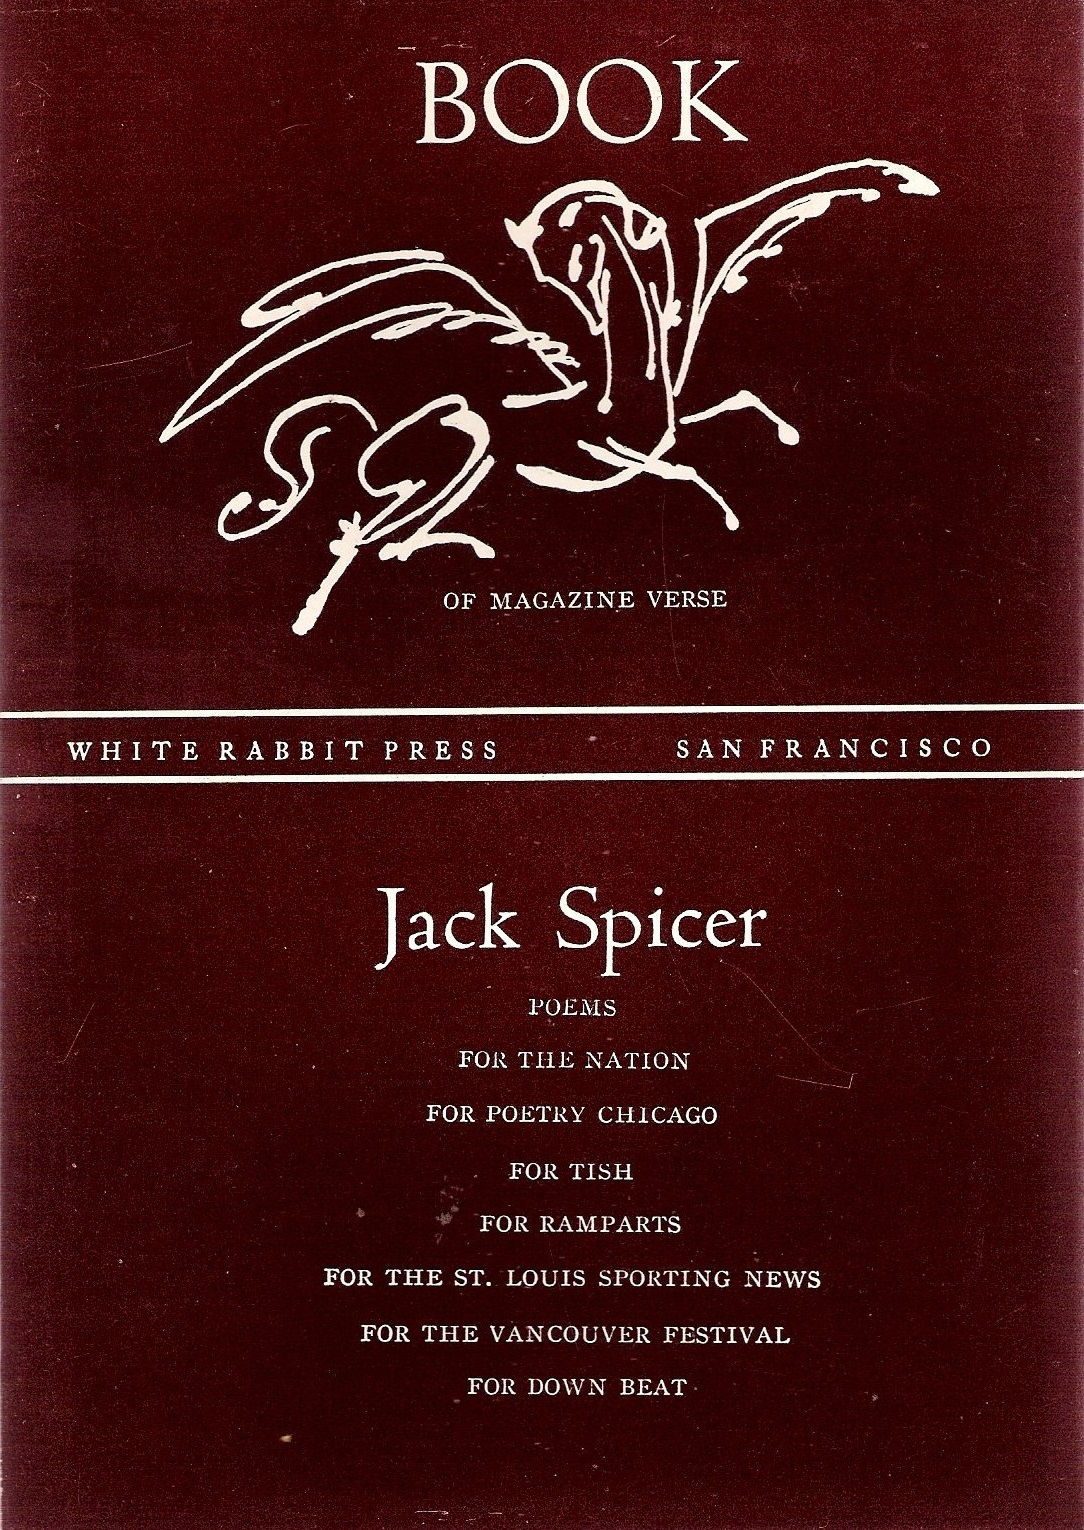 Book of Magazine Verse  by  Jack Spicer